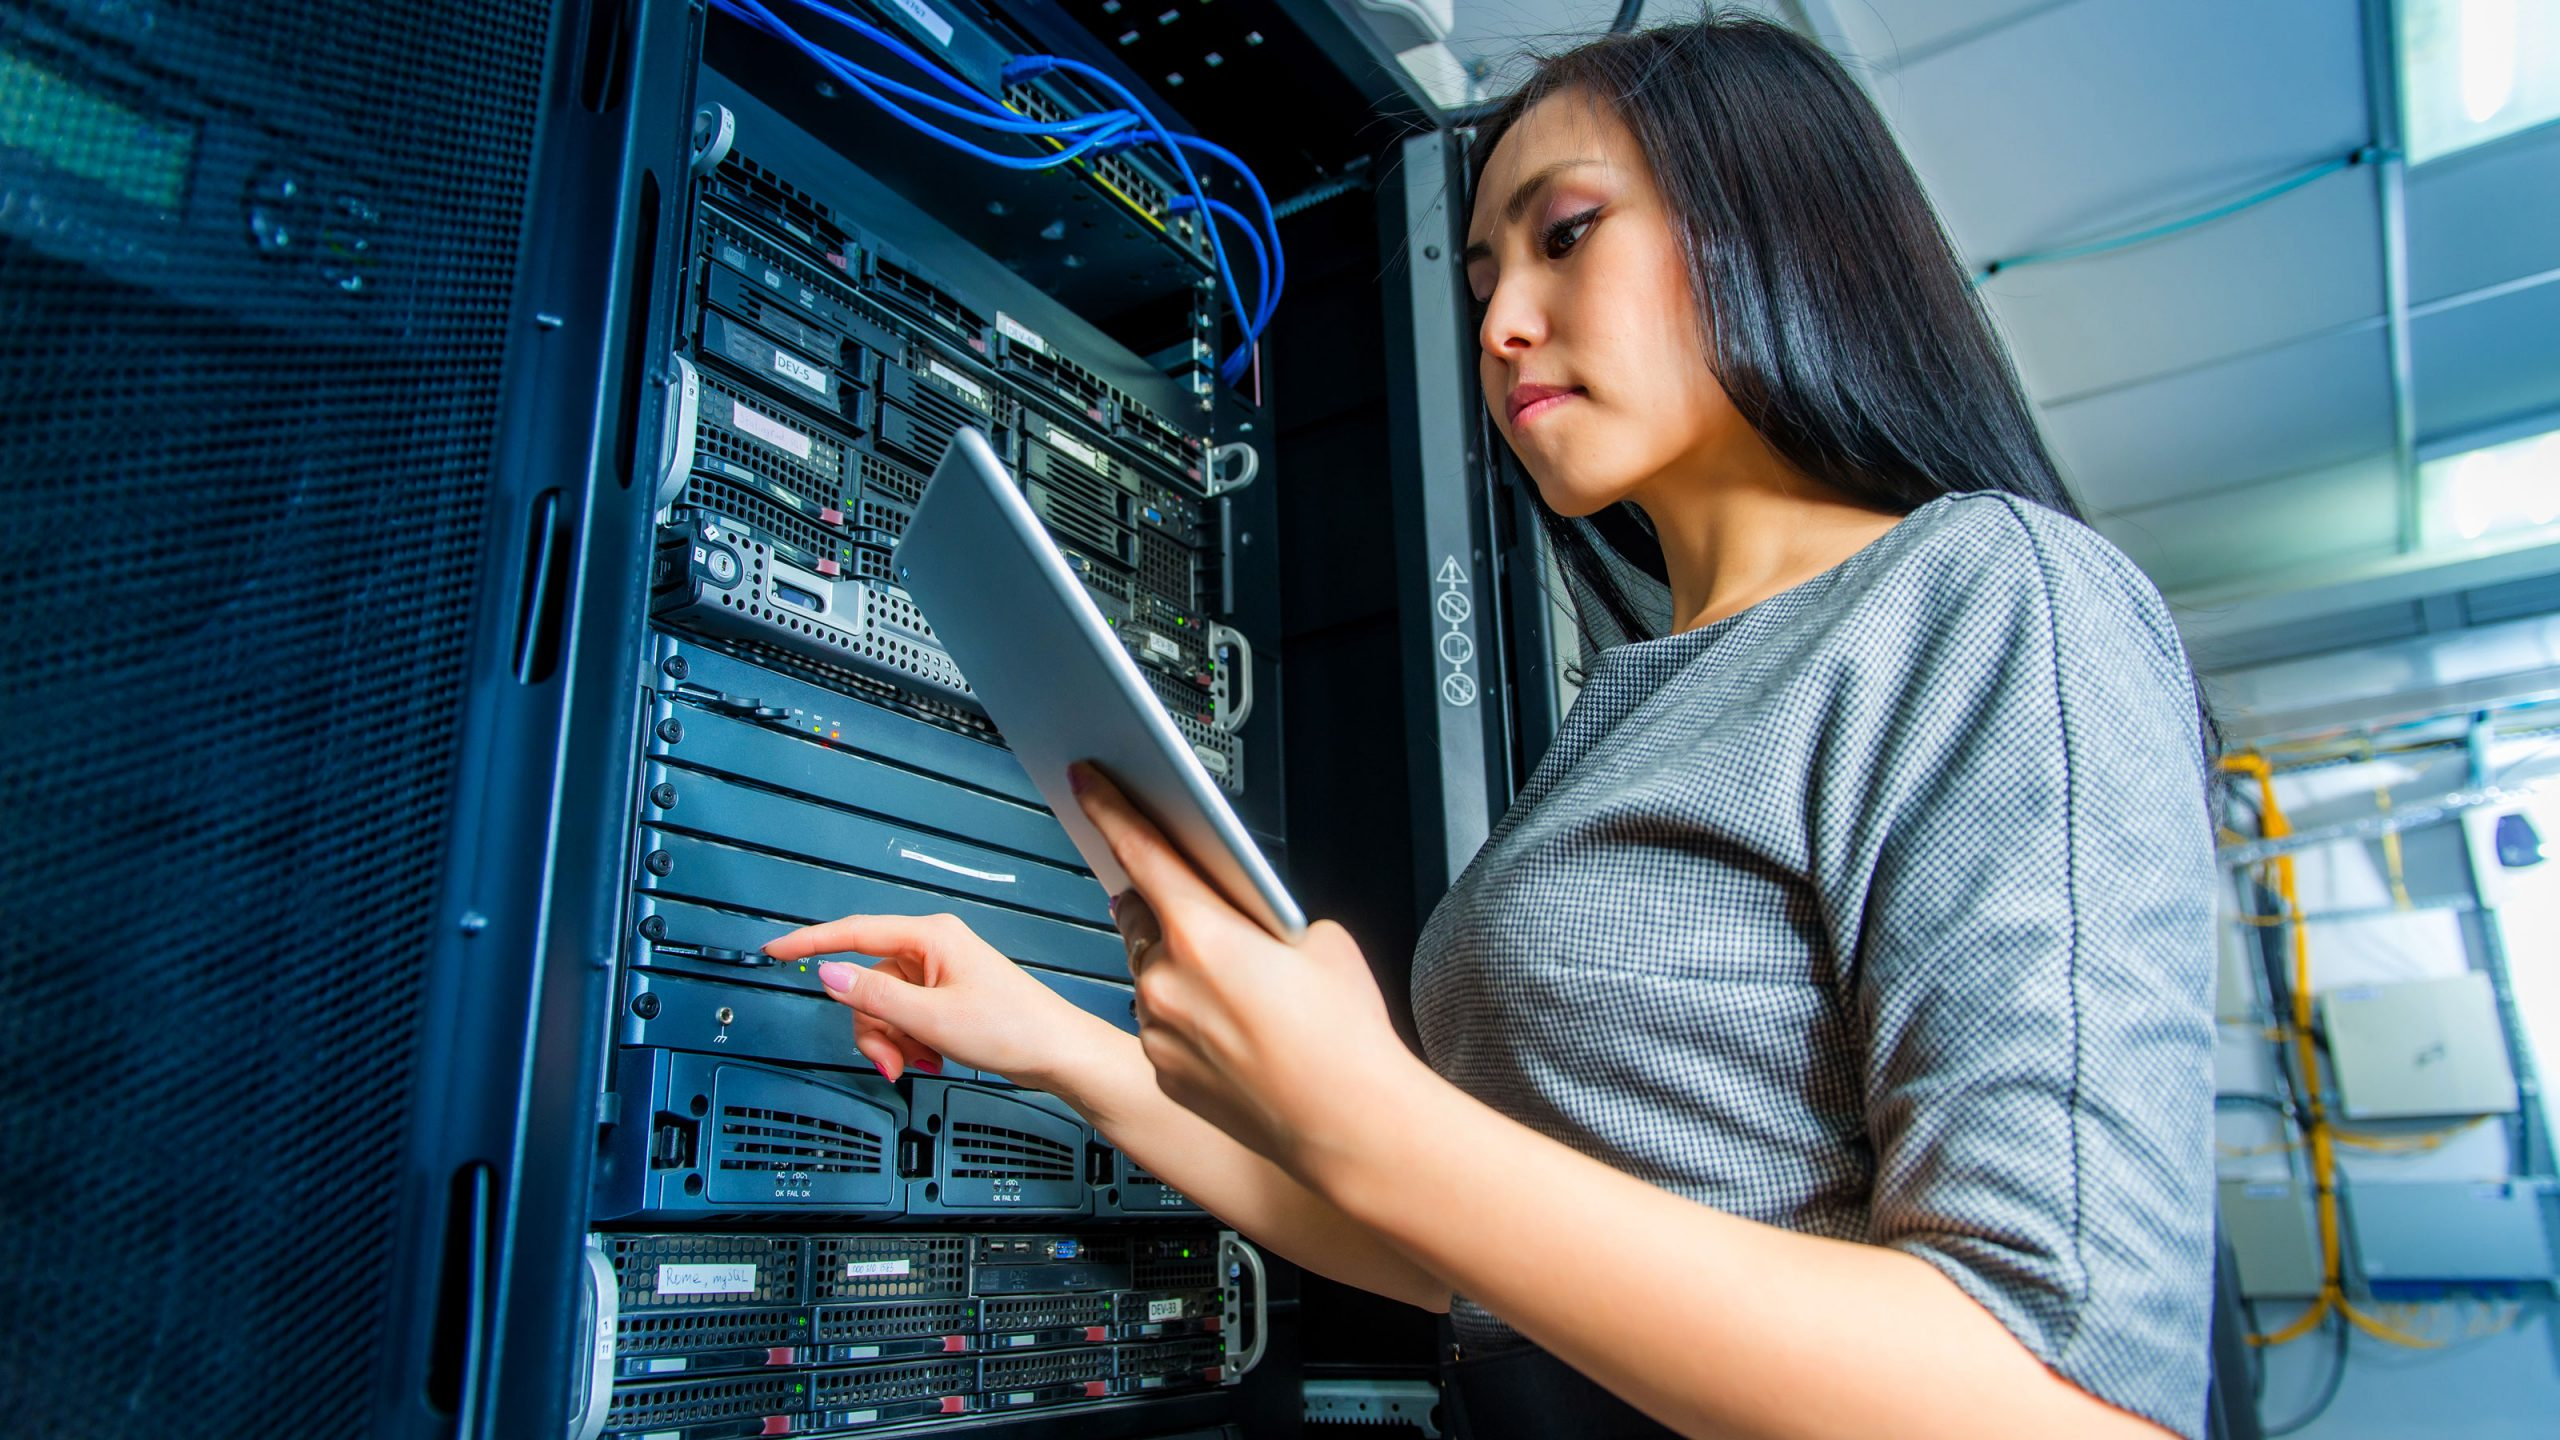 woman checking status of server in data center